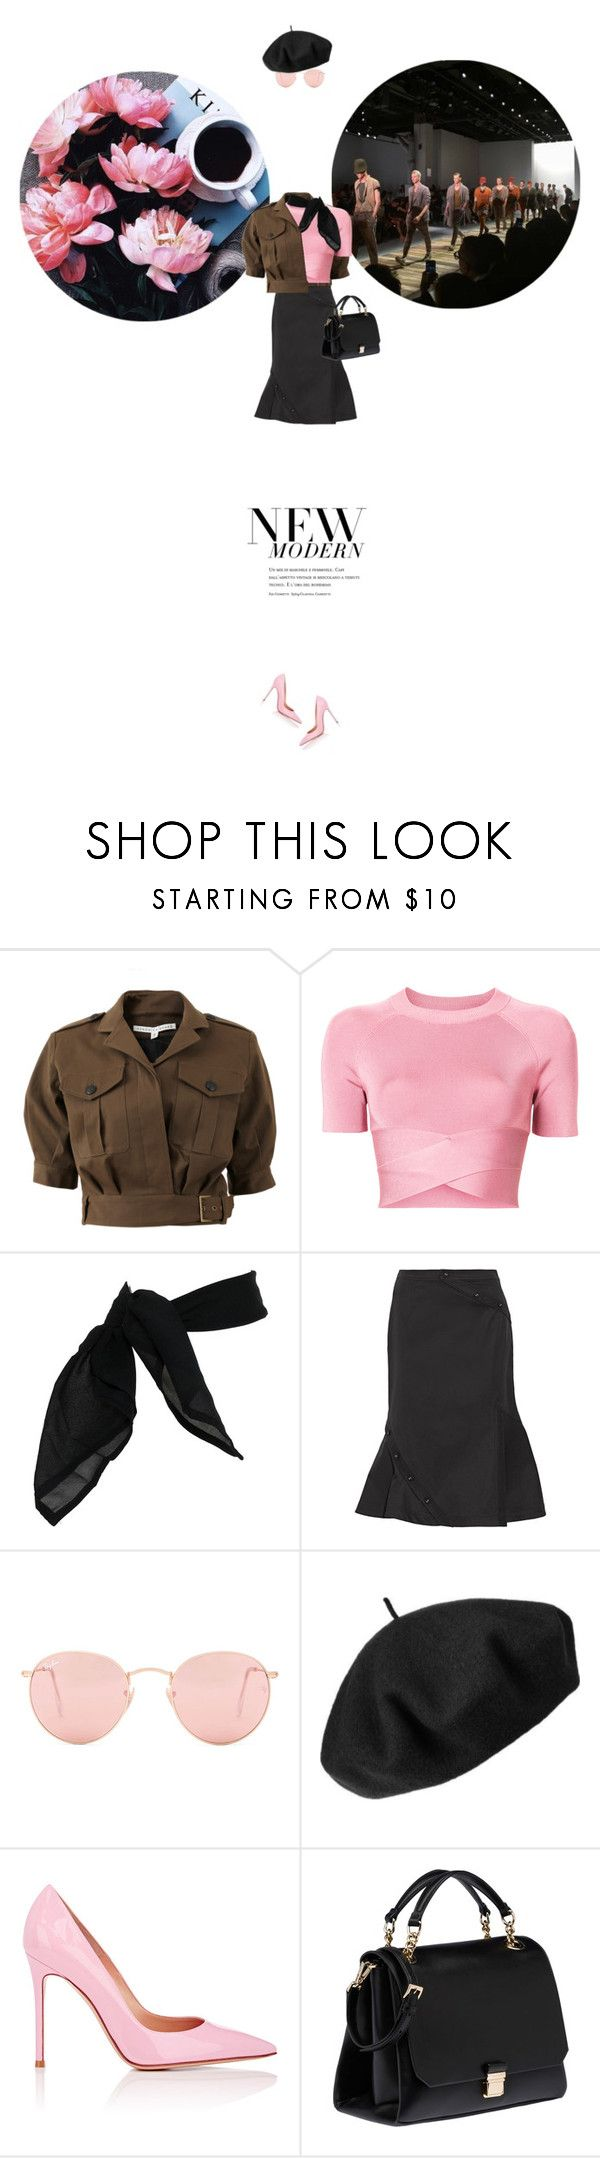 // 1331. New Modern. by lilymcenvy on Polyvore featuring T By Alexander Wang, Veronica Beard, Monse, Gianvito Rossi, Miu Miu, Betmar, TC Fine Intimates, Ray-Ban, Amica and modern